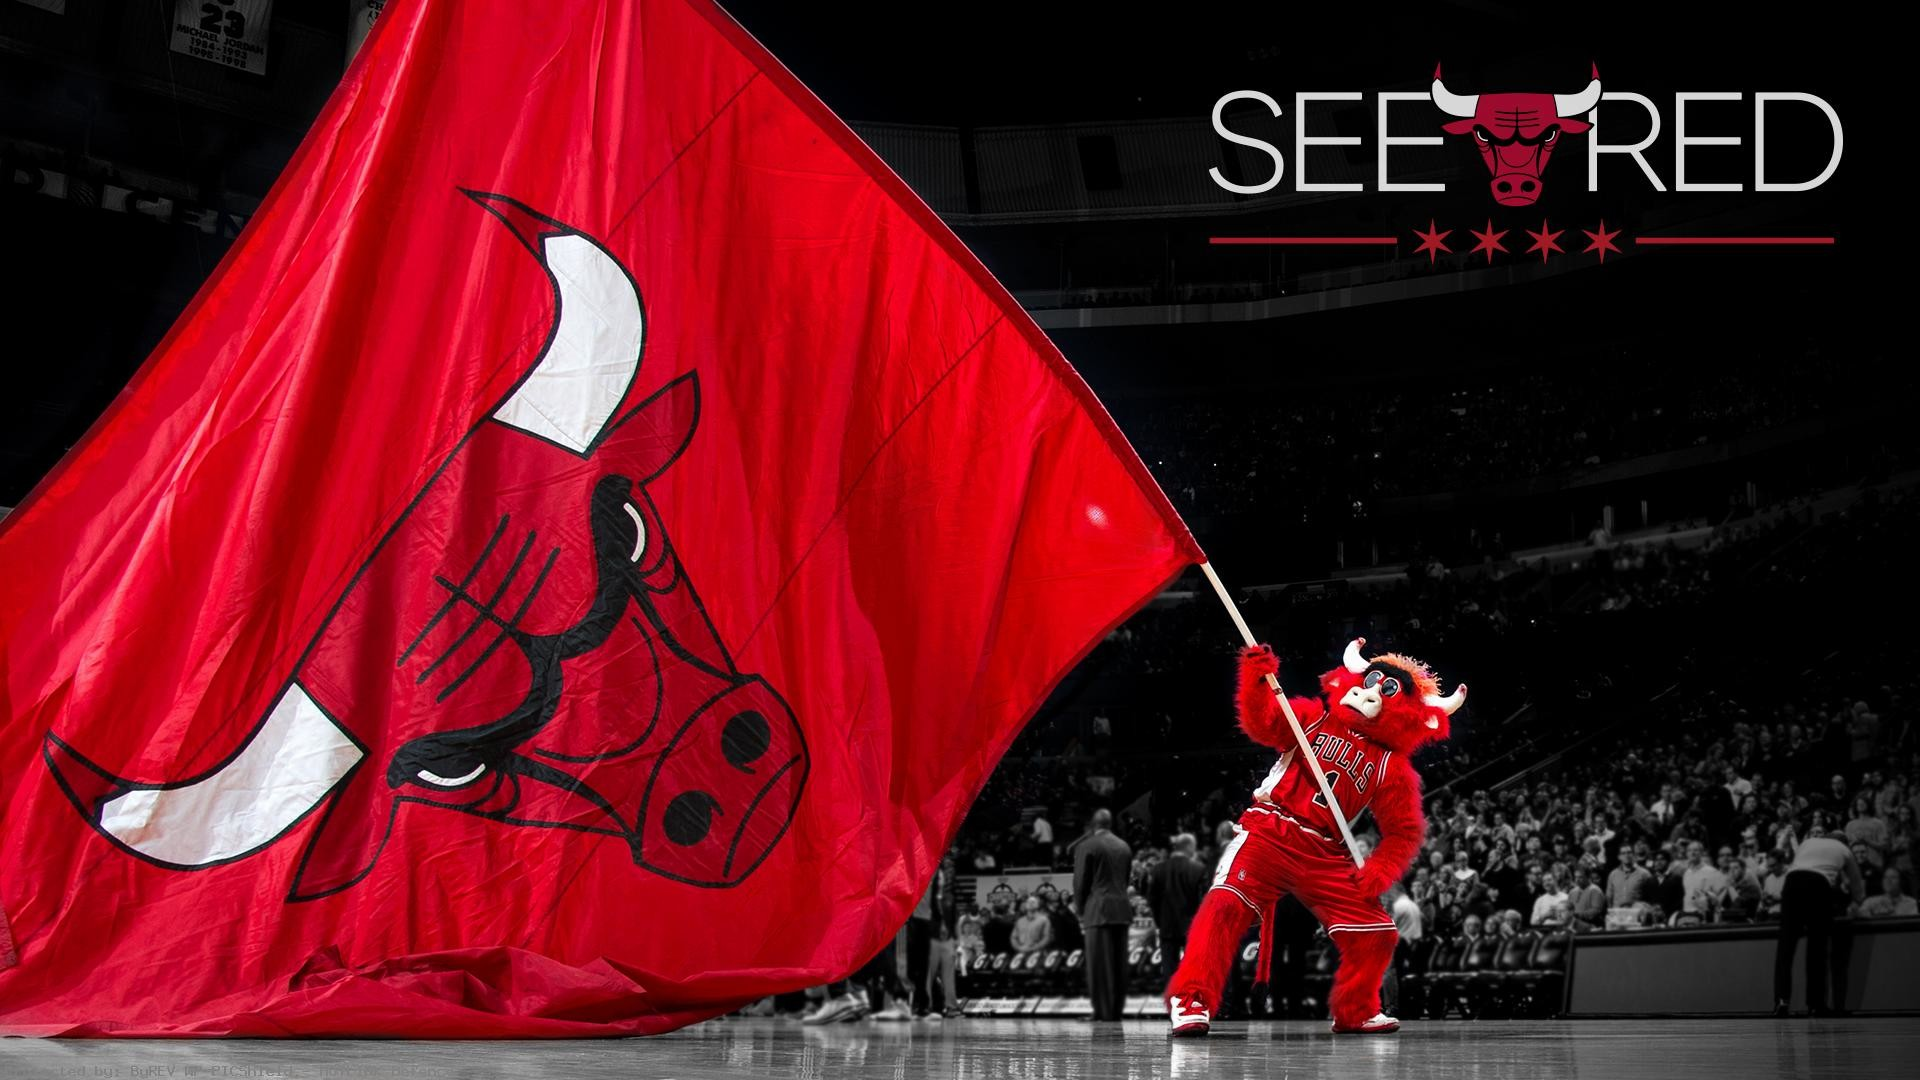 1920x1080 SEE-RED-Chicago-Bulls-Playoffs-wallpaper-wp60011662